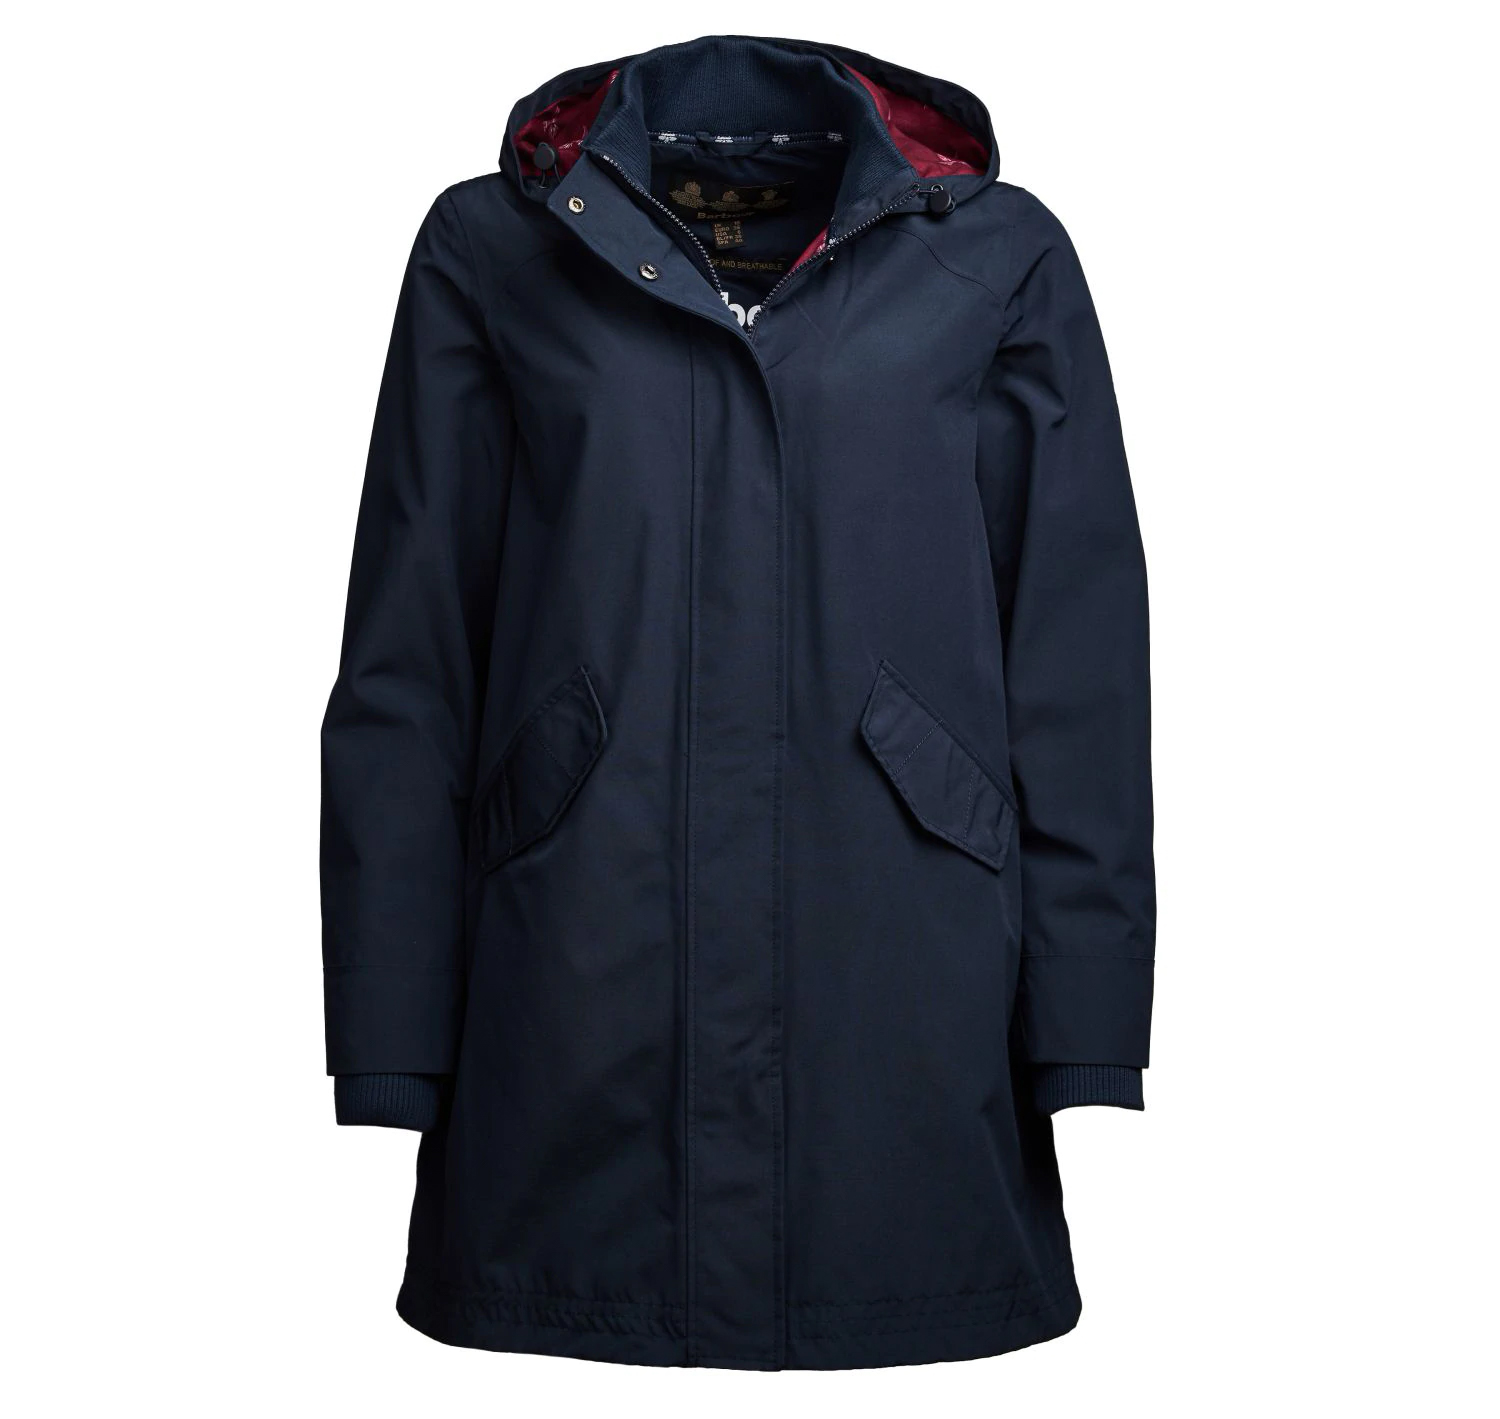 Barbour Weatherly Waterproof Breathable Jacket Barbour International: Regular Fit